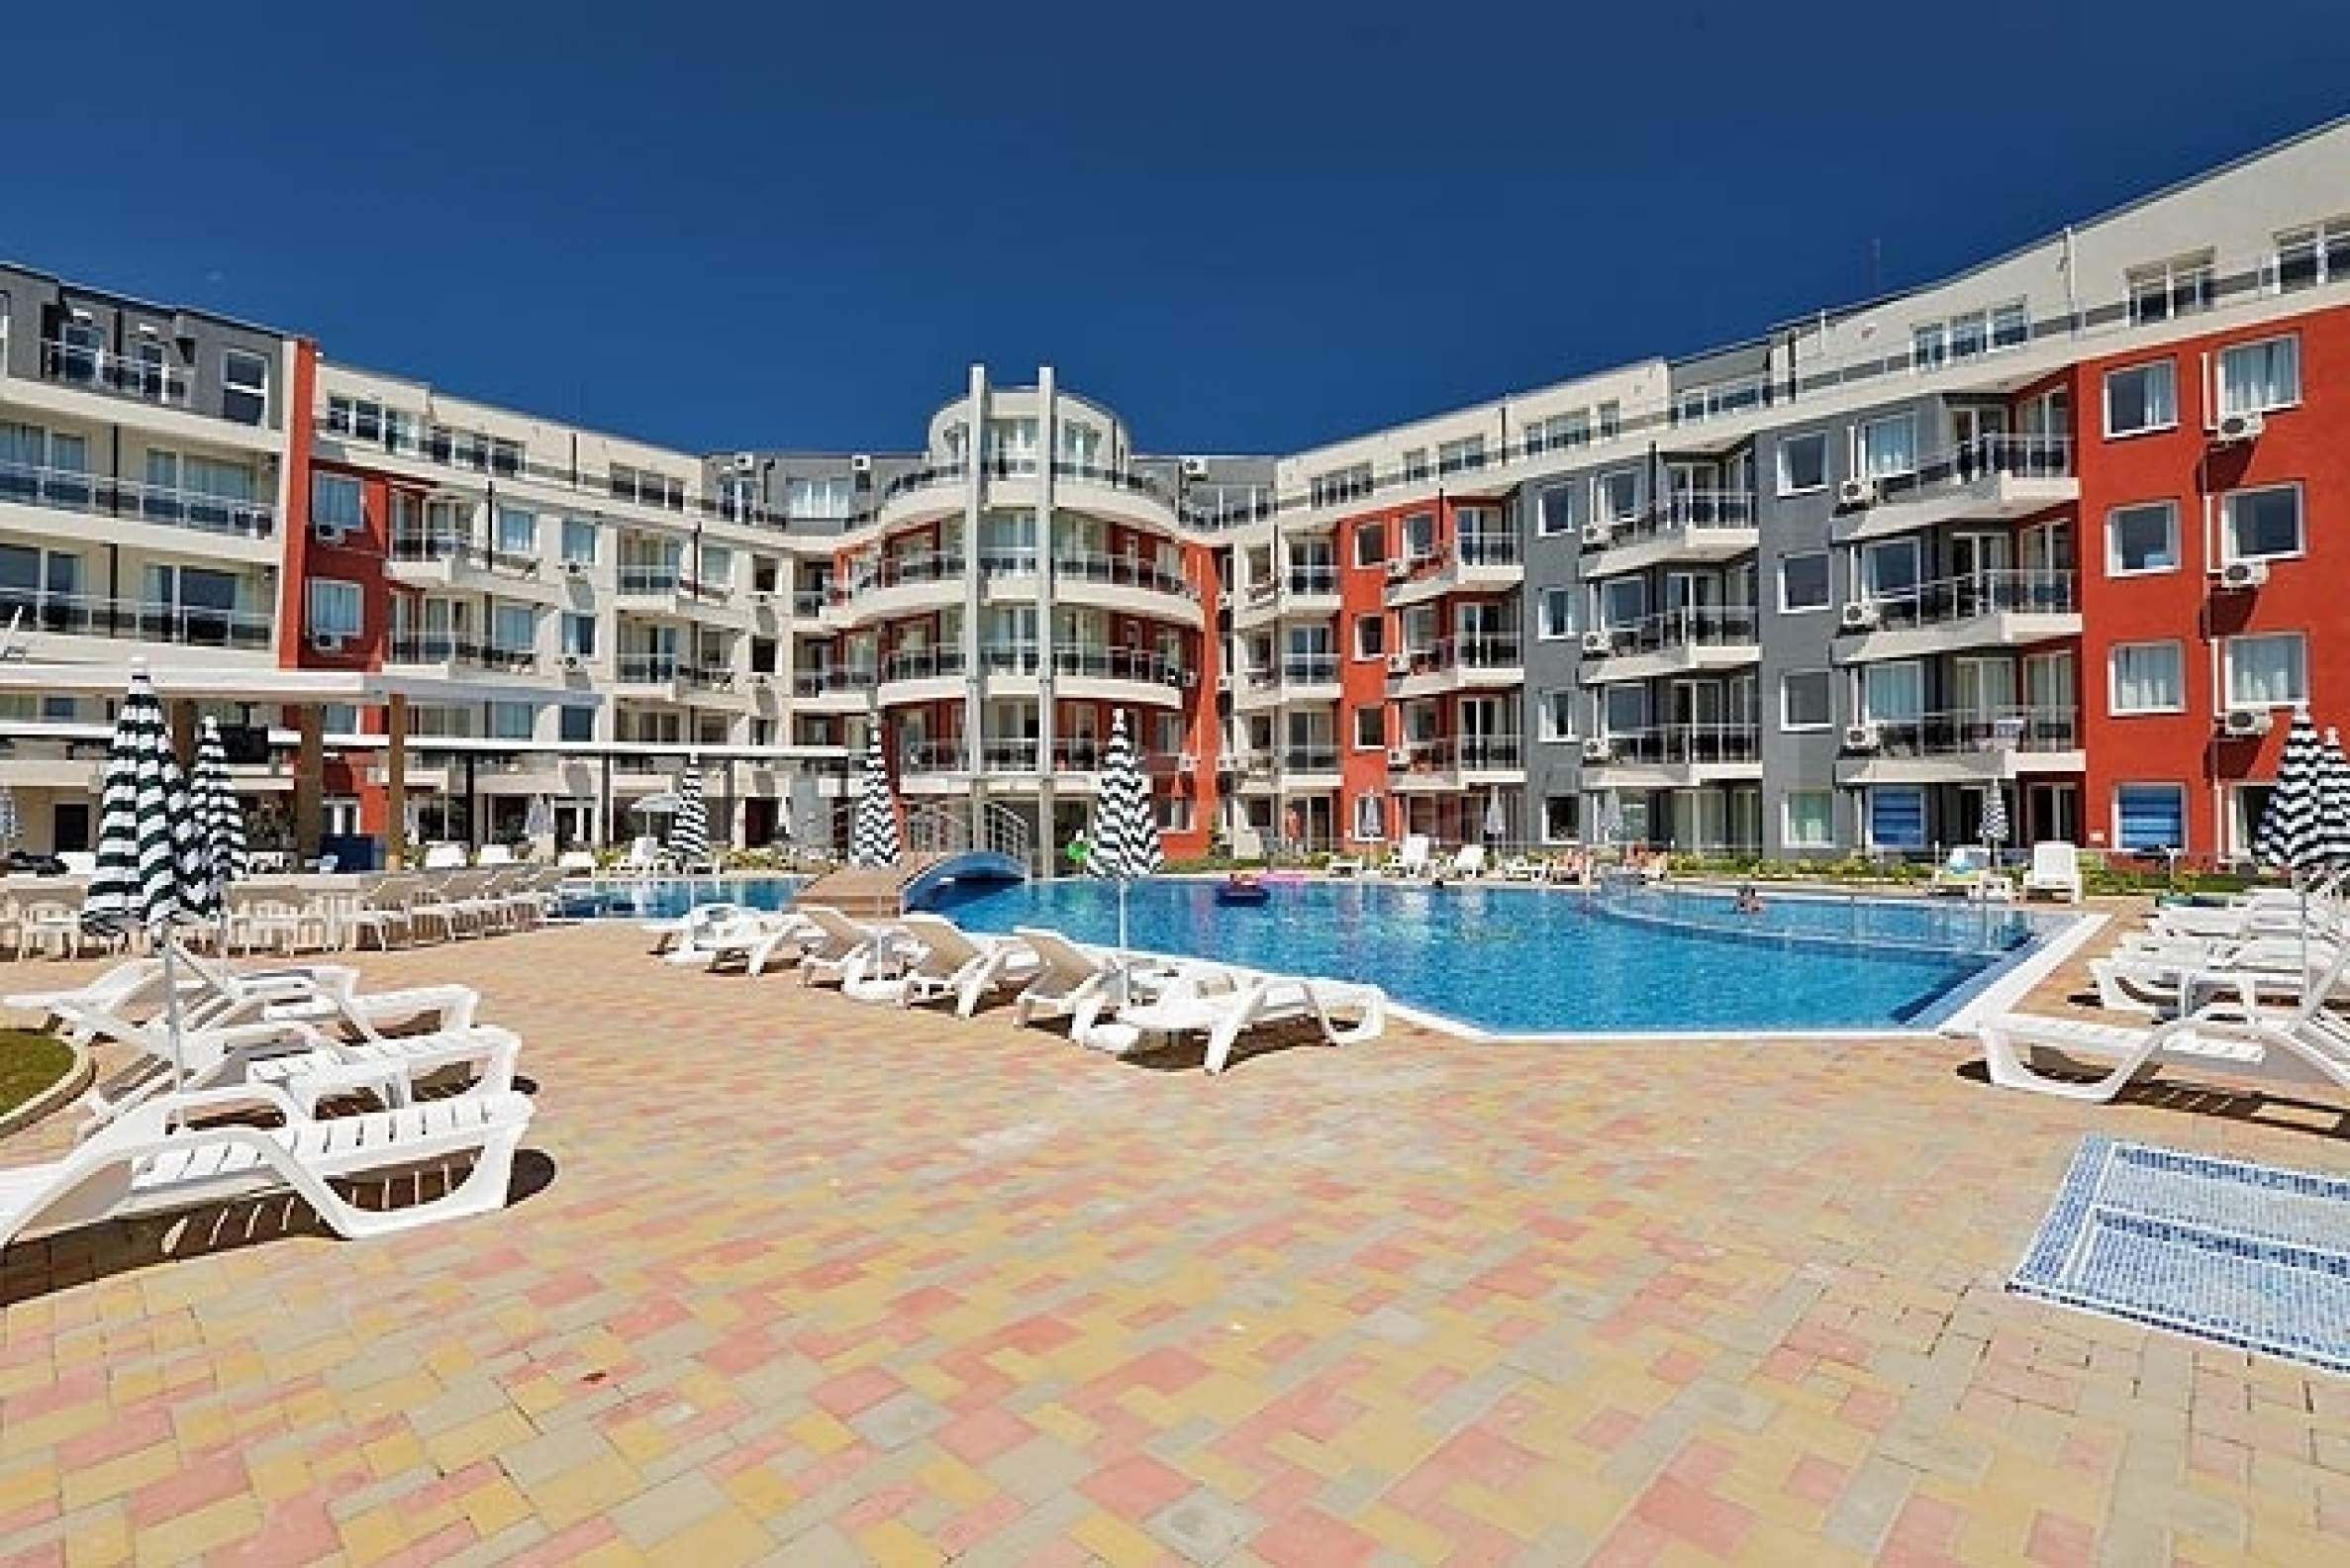 Turn-key ready apartments in Emberli complex, just 3 min. walk from the beach2 - Stonehard